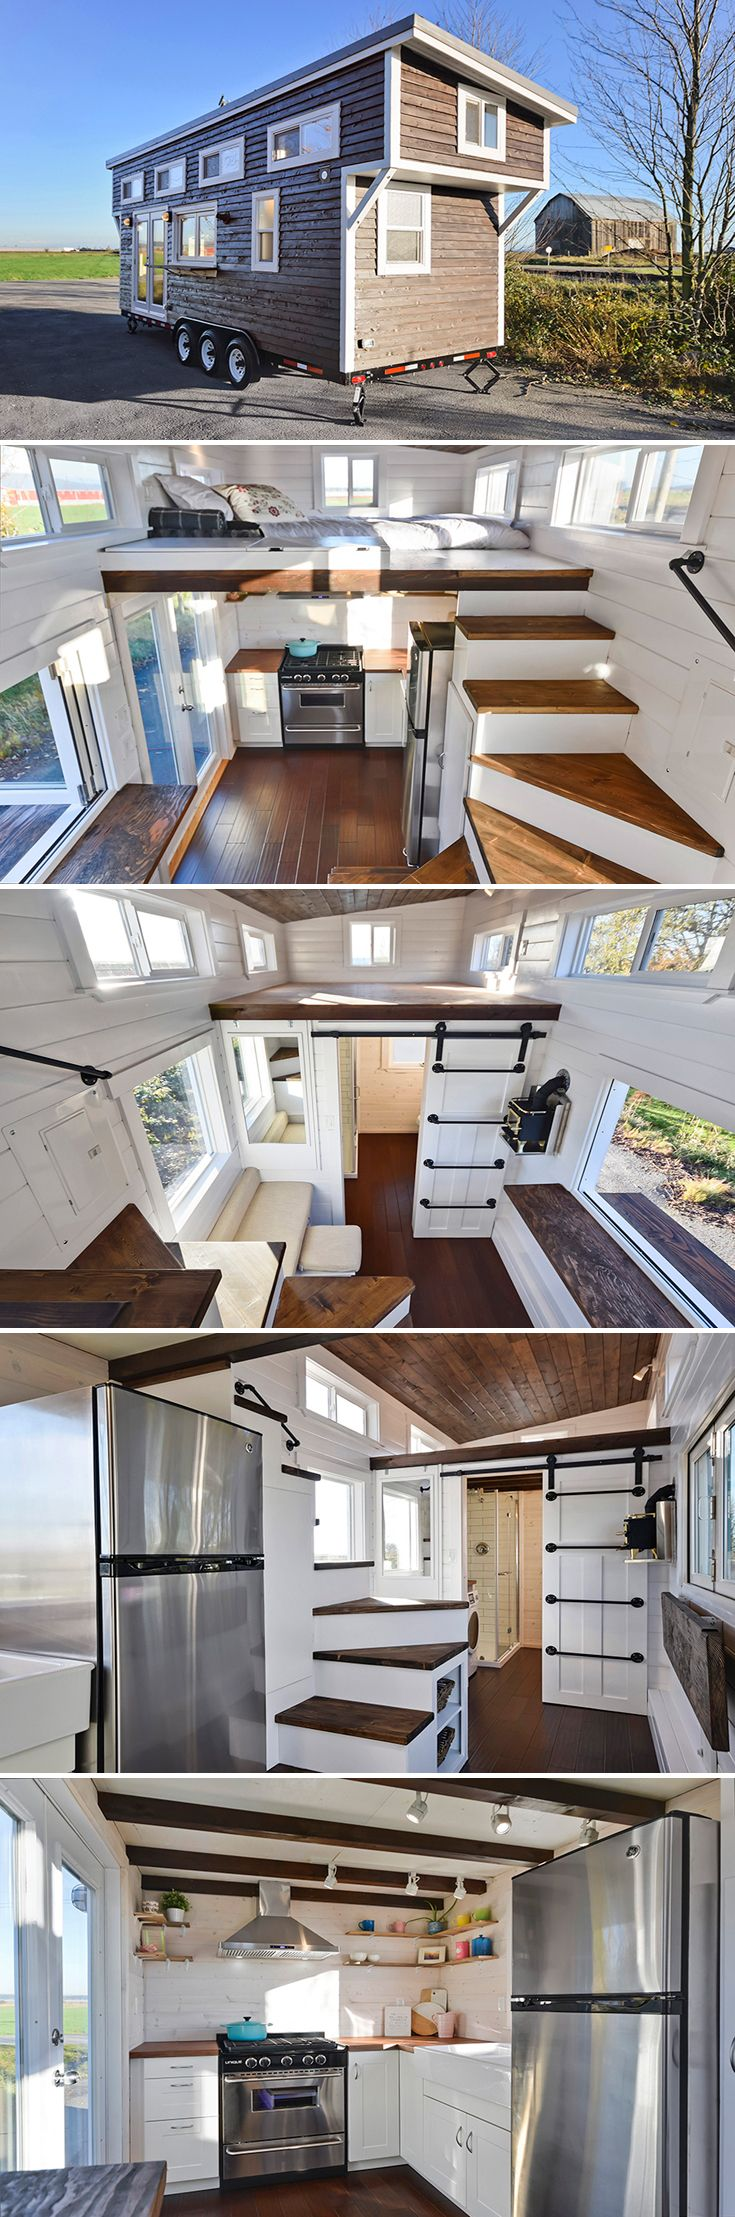 Custom Tiny House by Mint Tiny Homes